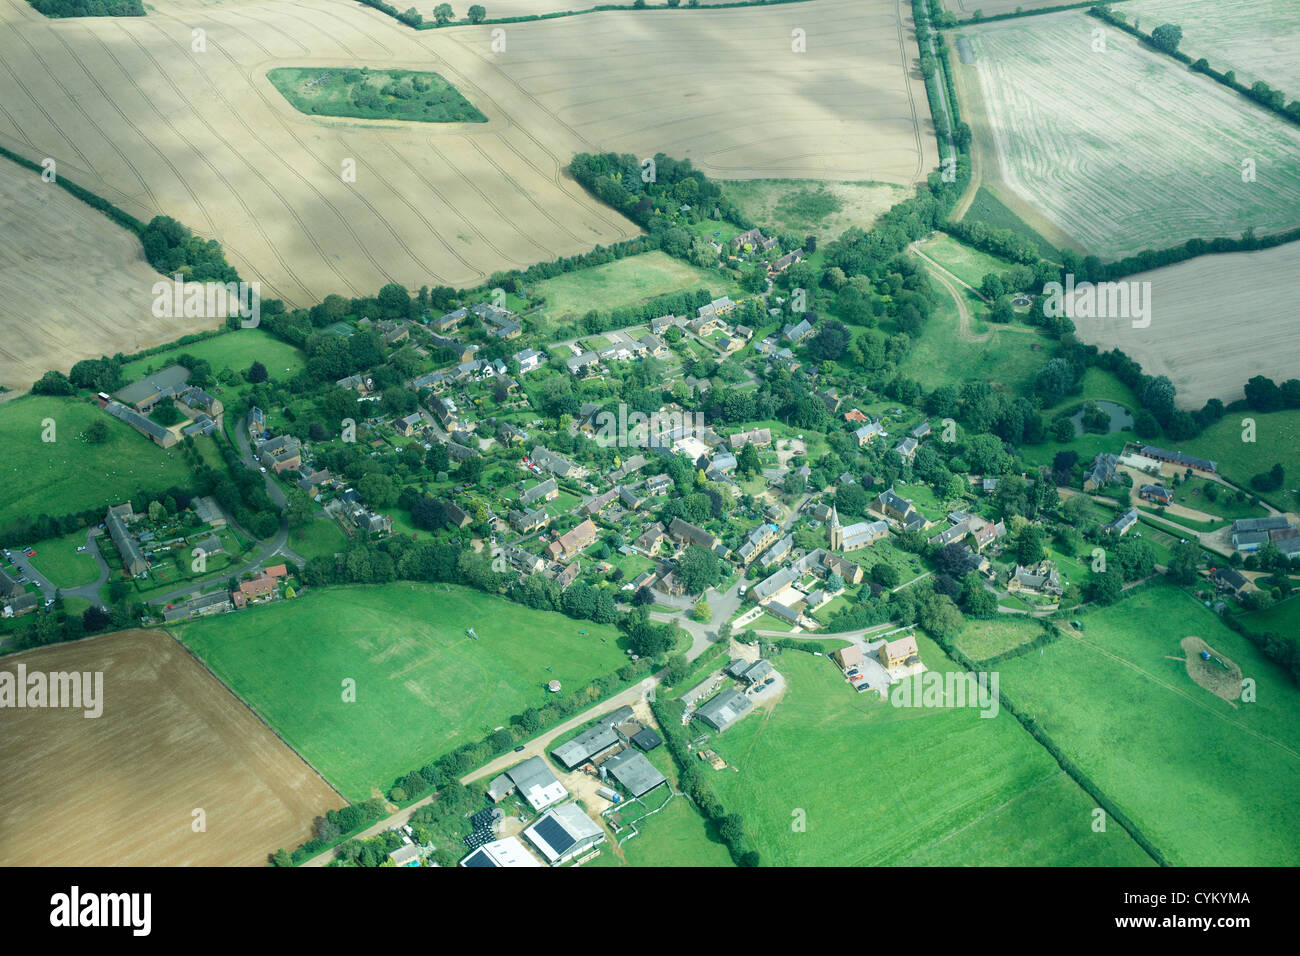 Aerial view of rural town and fields Stock Photo